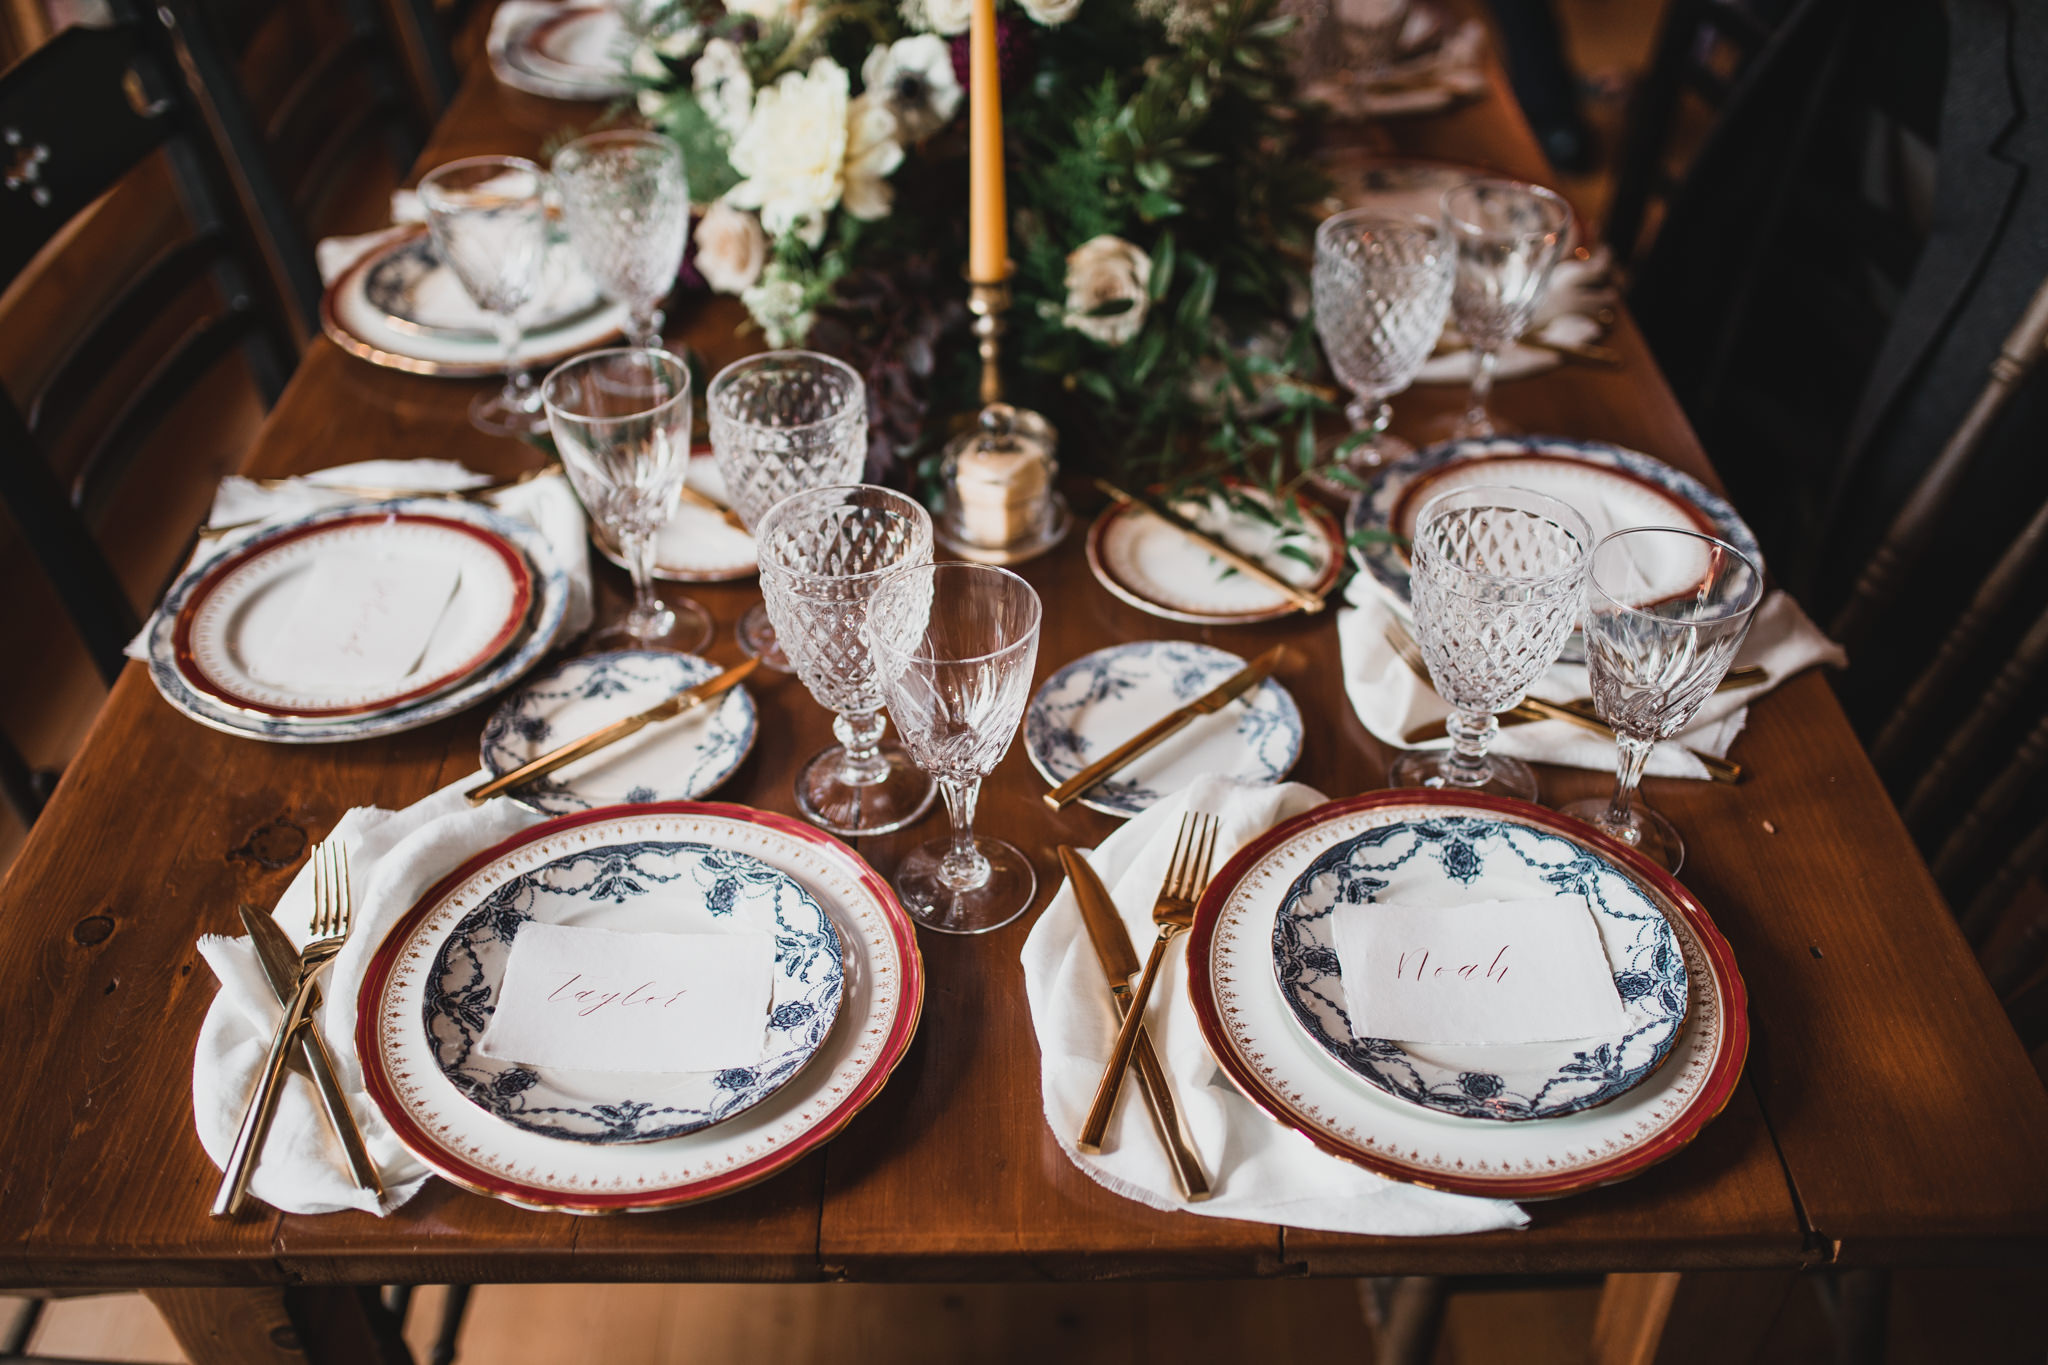 Intimate Dinner Table, wedding, calligraphy